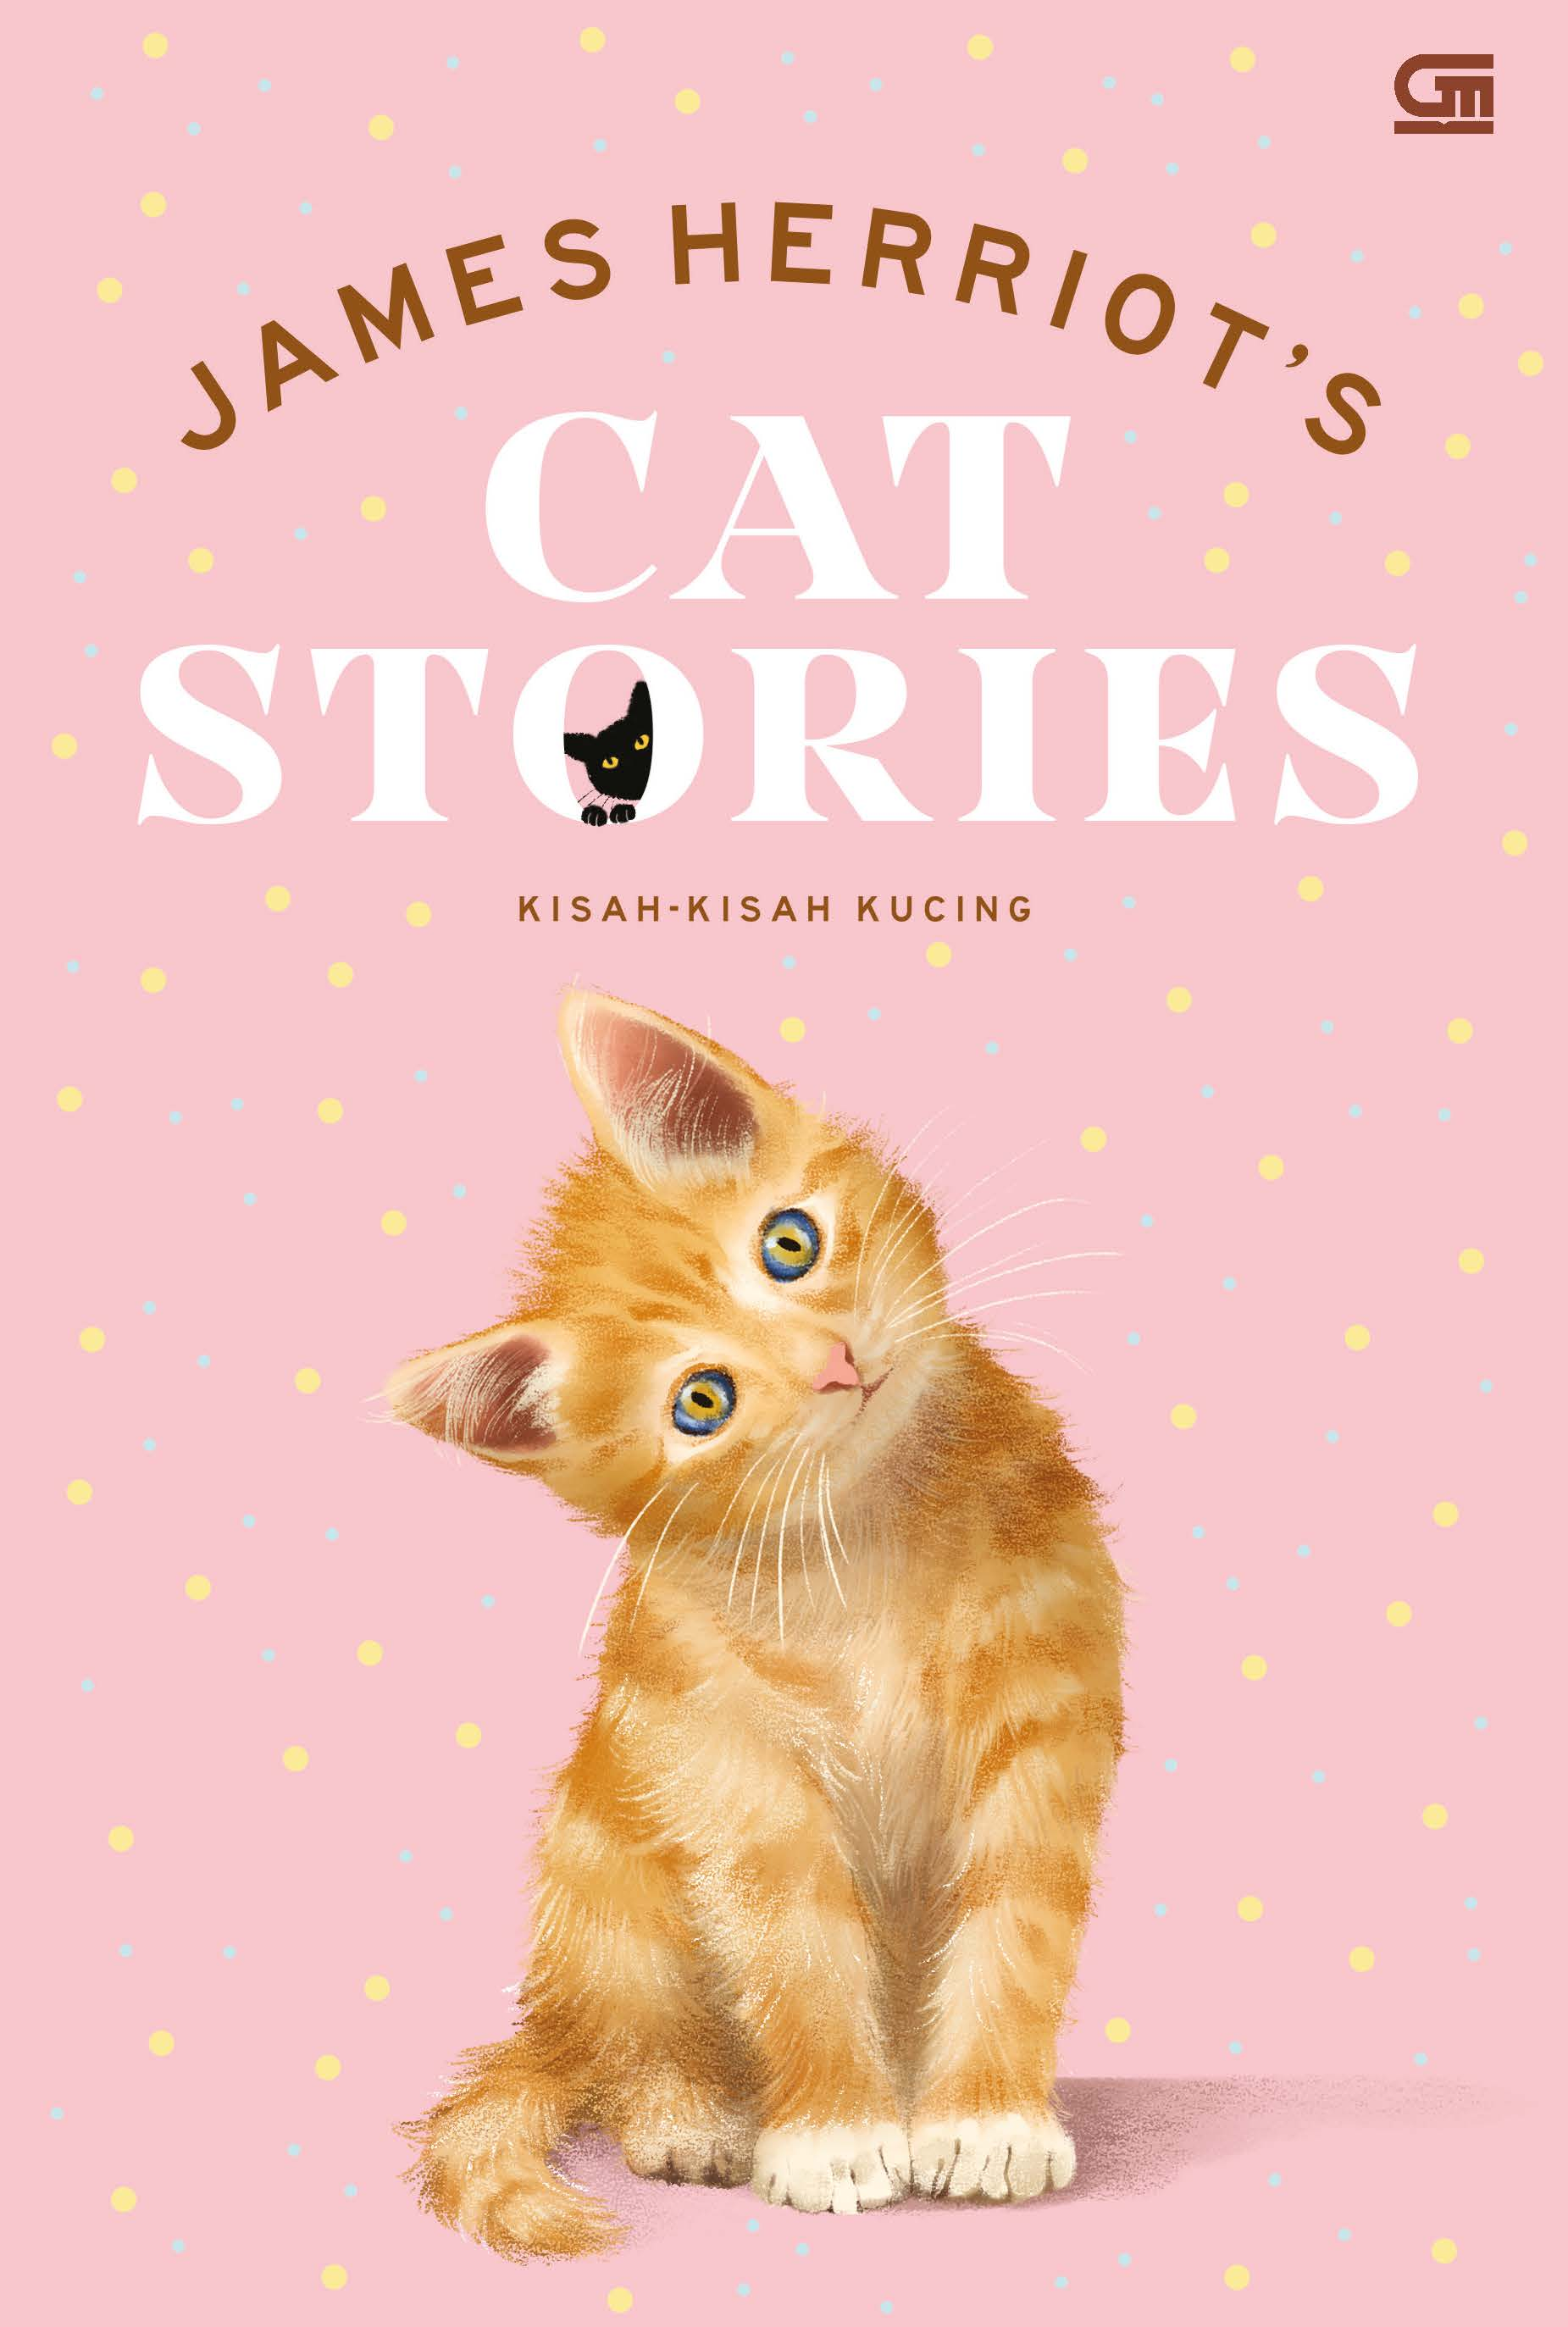 Kisah-Kisah Kucing (Cat Stories)